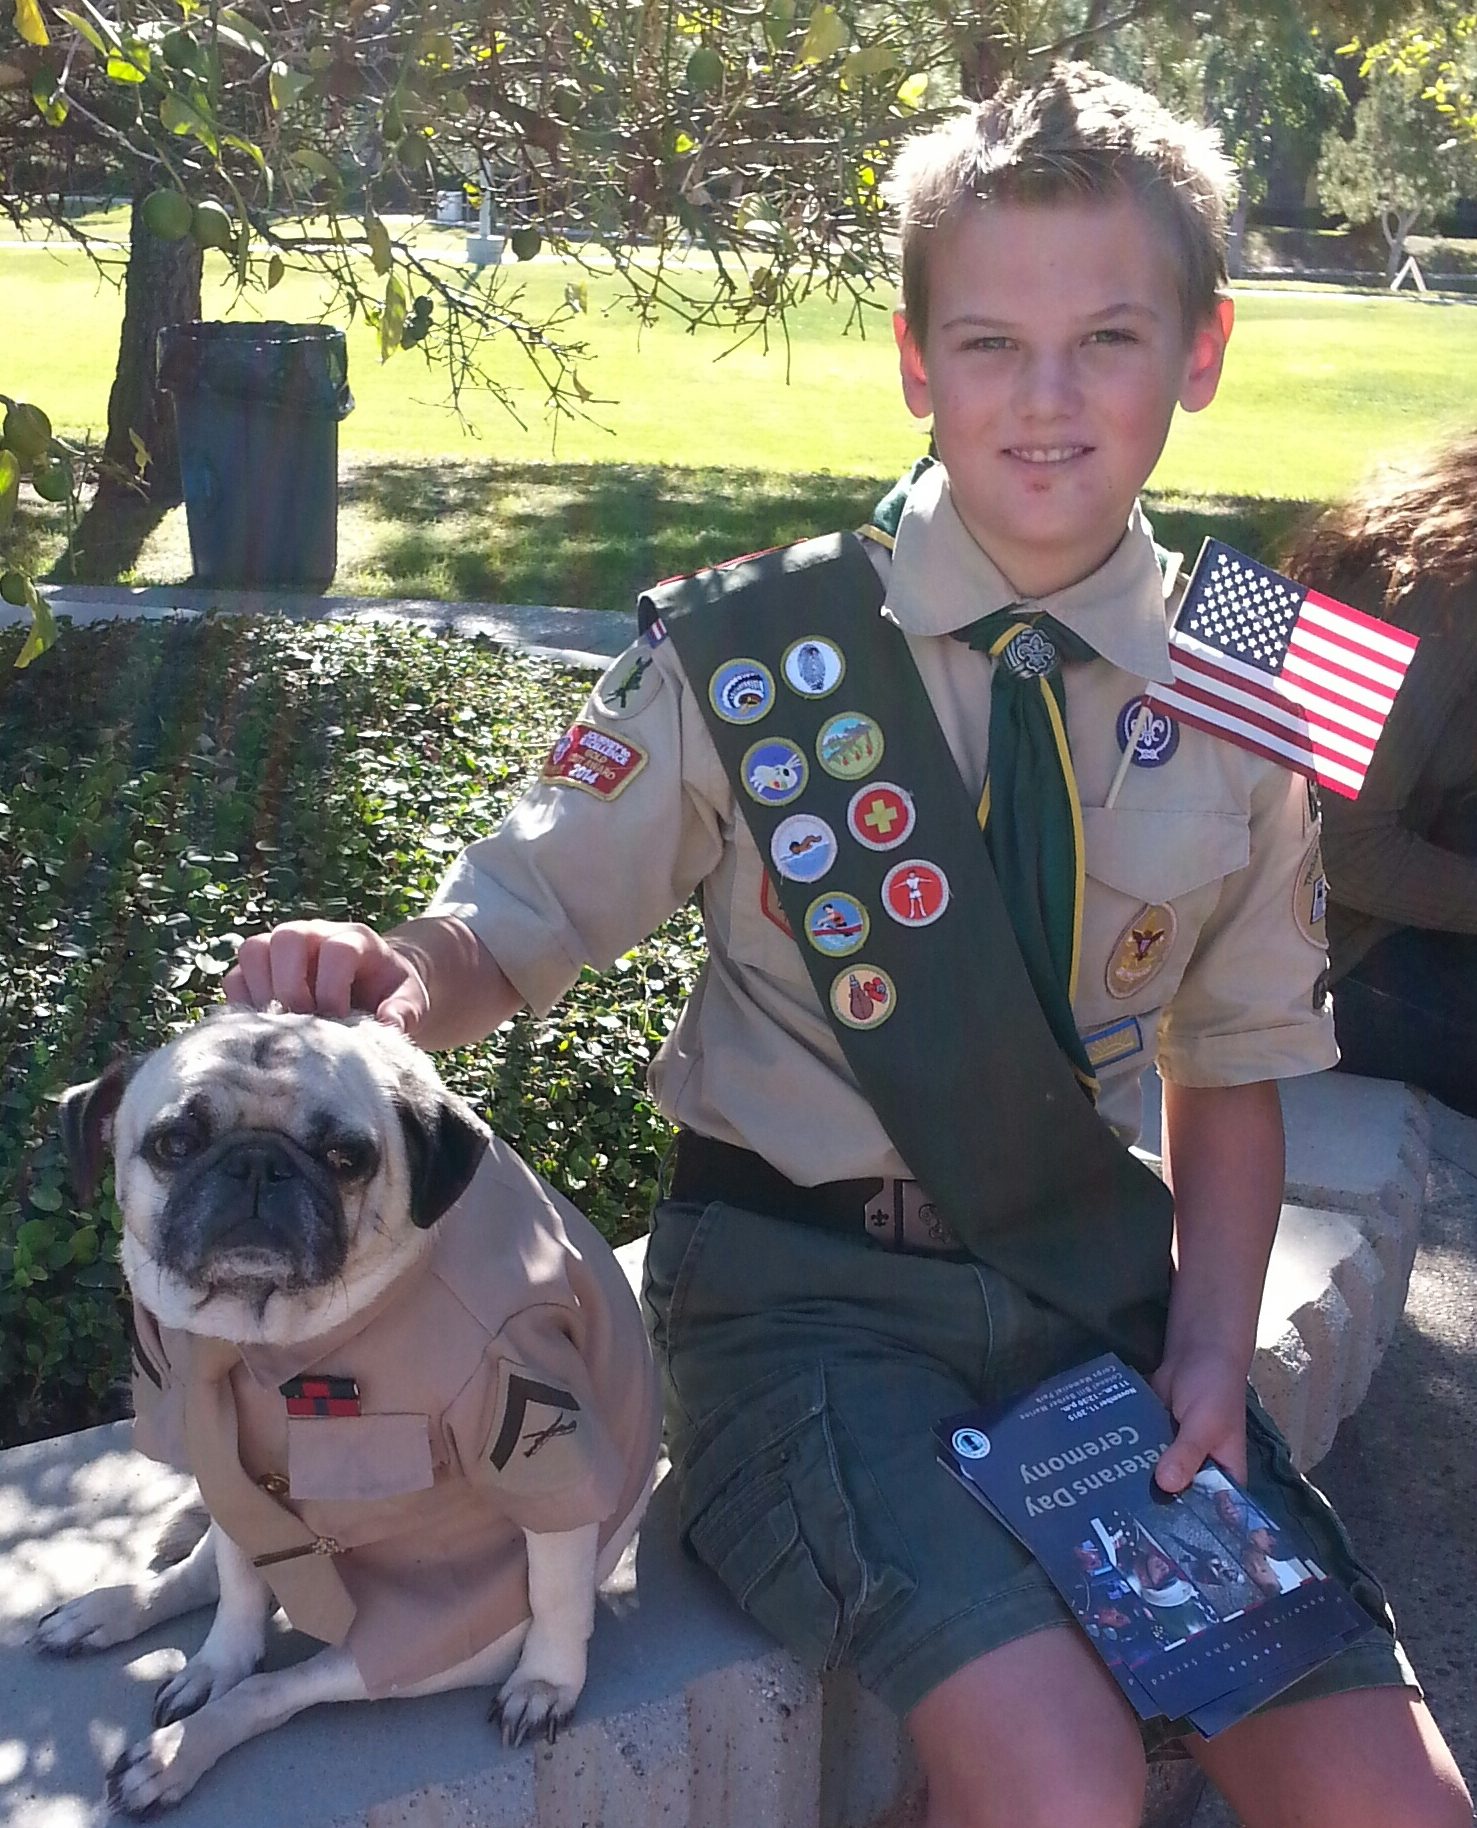 a boy scout beside a dog